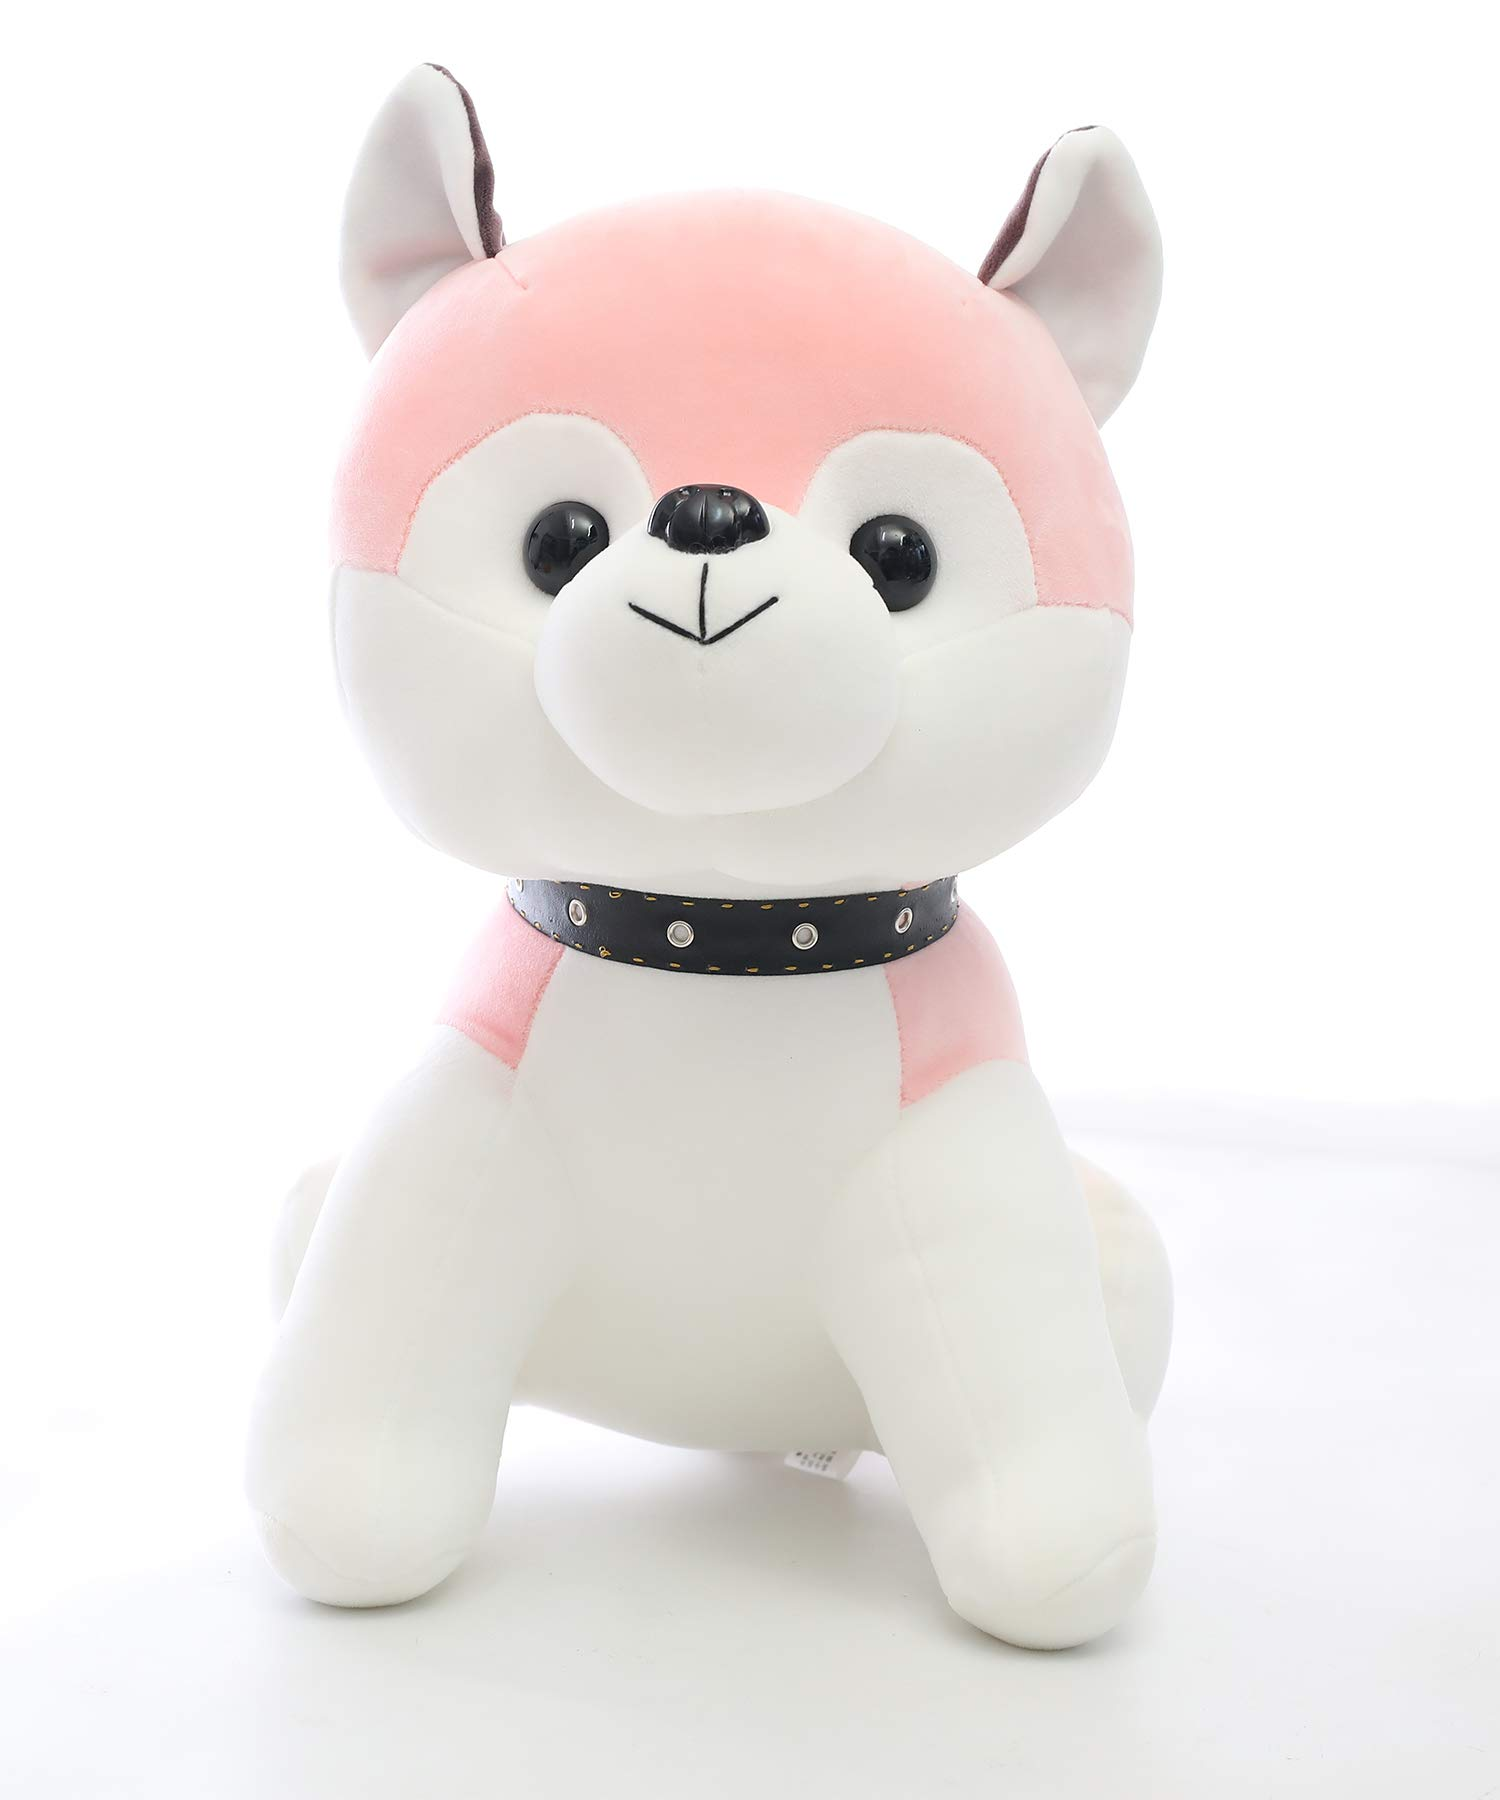 AIXINI Soft Plush Husky Puppy Dog Stuffed Animals Toys, Cute Elastic – Pink 19.6inch Gifts for Kids Baby Party Funny Bed Time